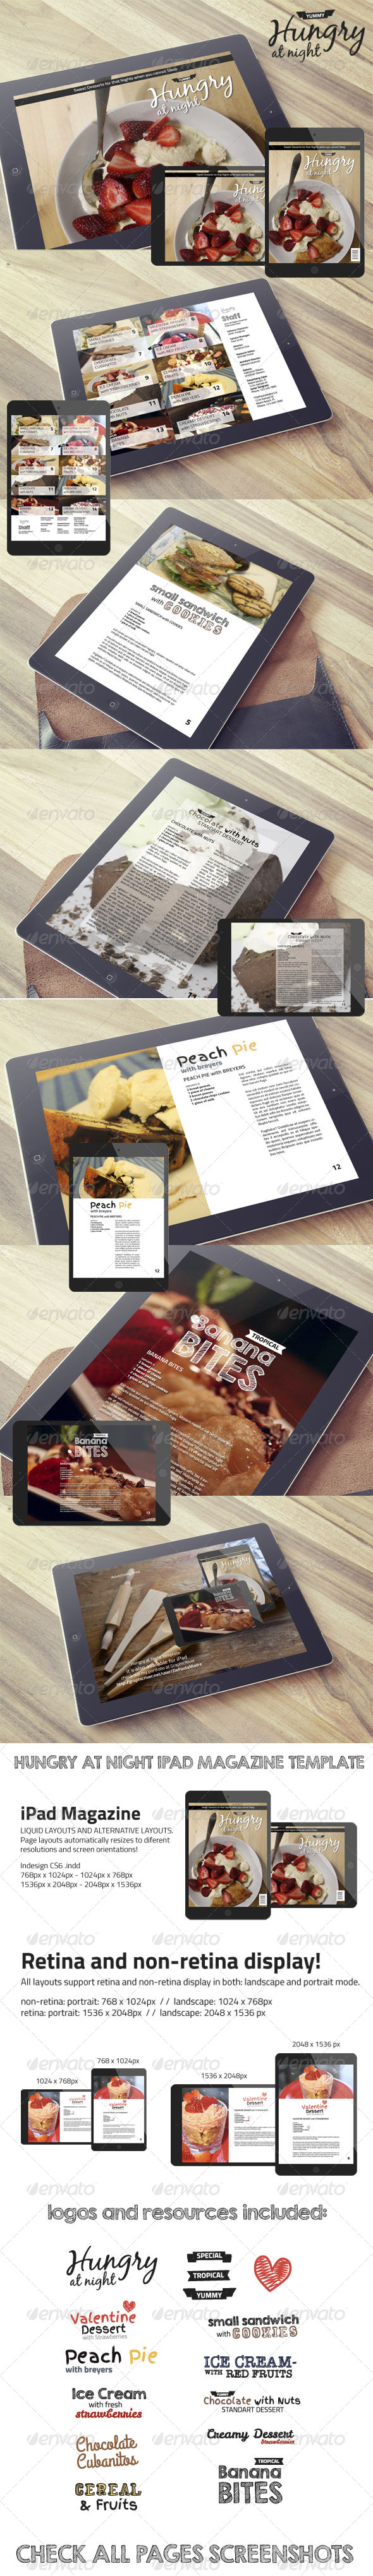 GraphicRiver Hungry At Night iPad Magazine Template 7010574